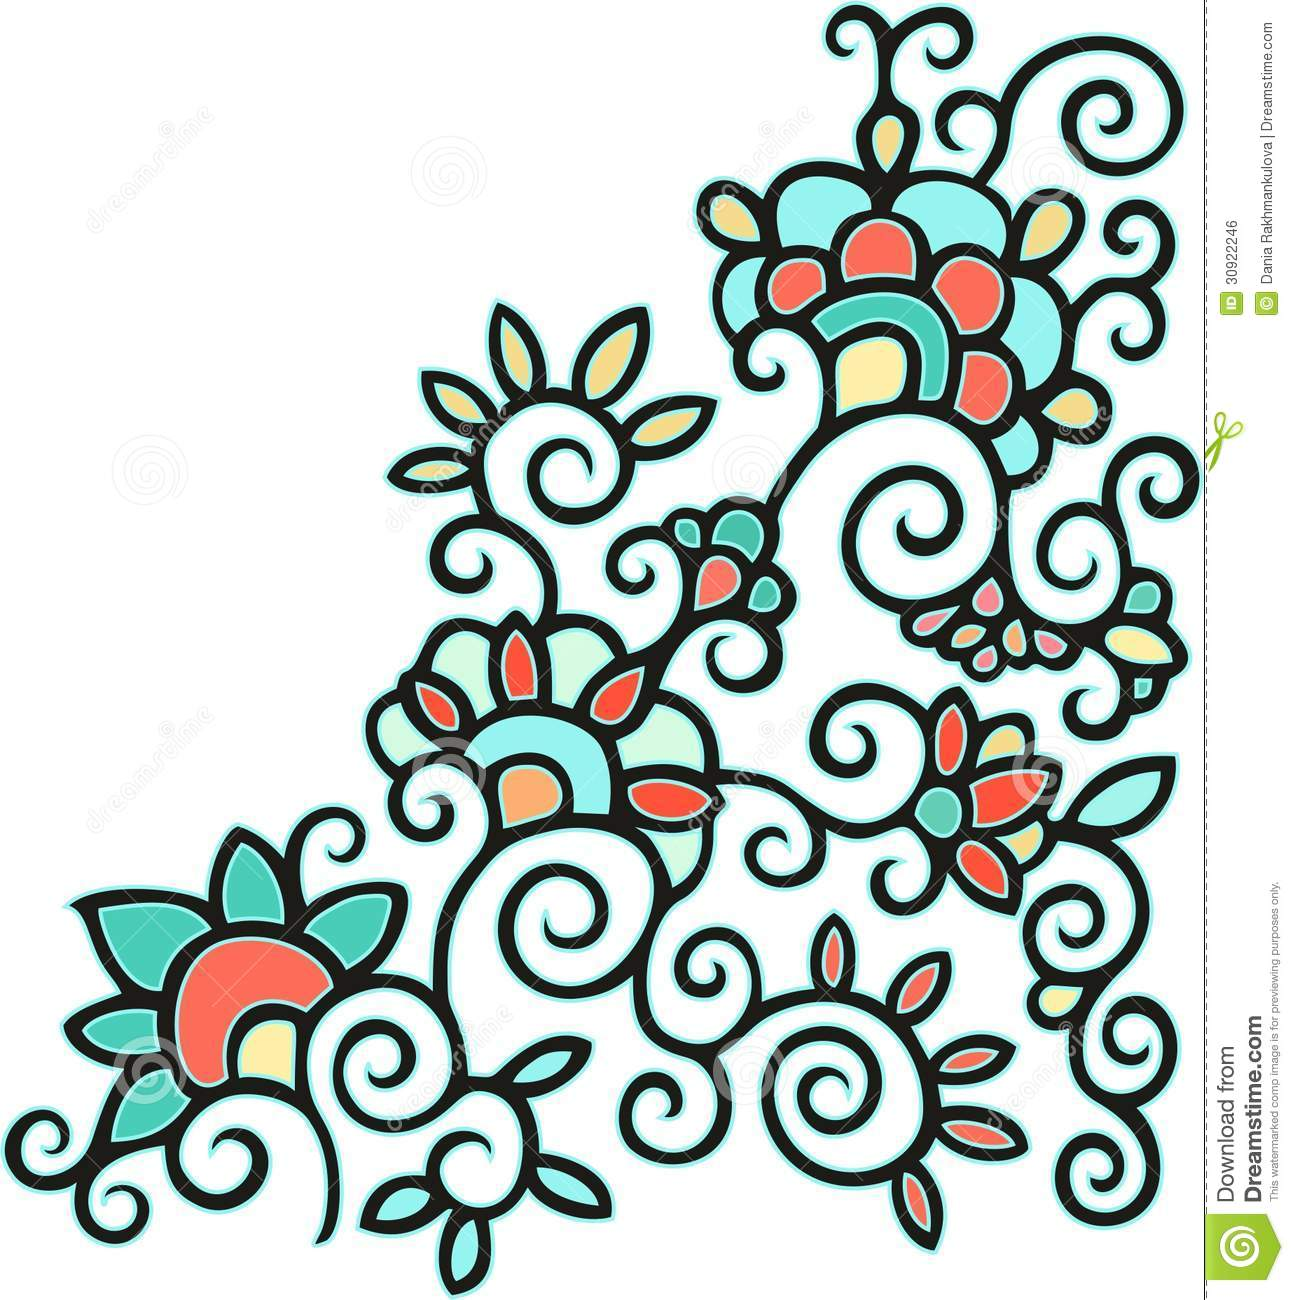 Laced Floral Pattern Royalty Free Stock Image